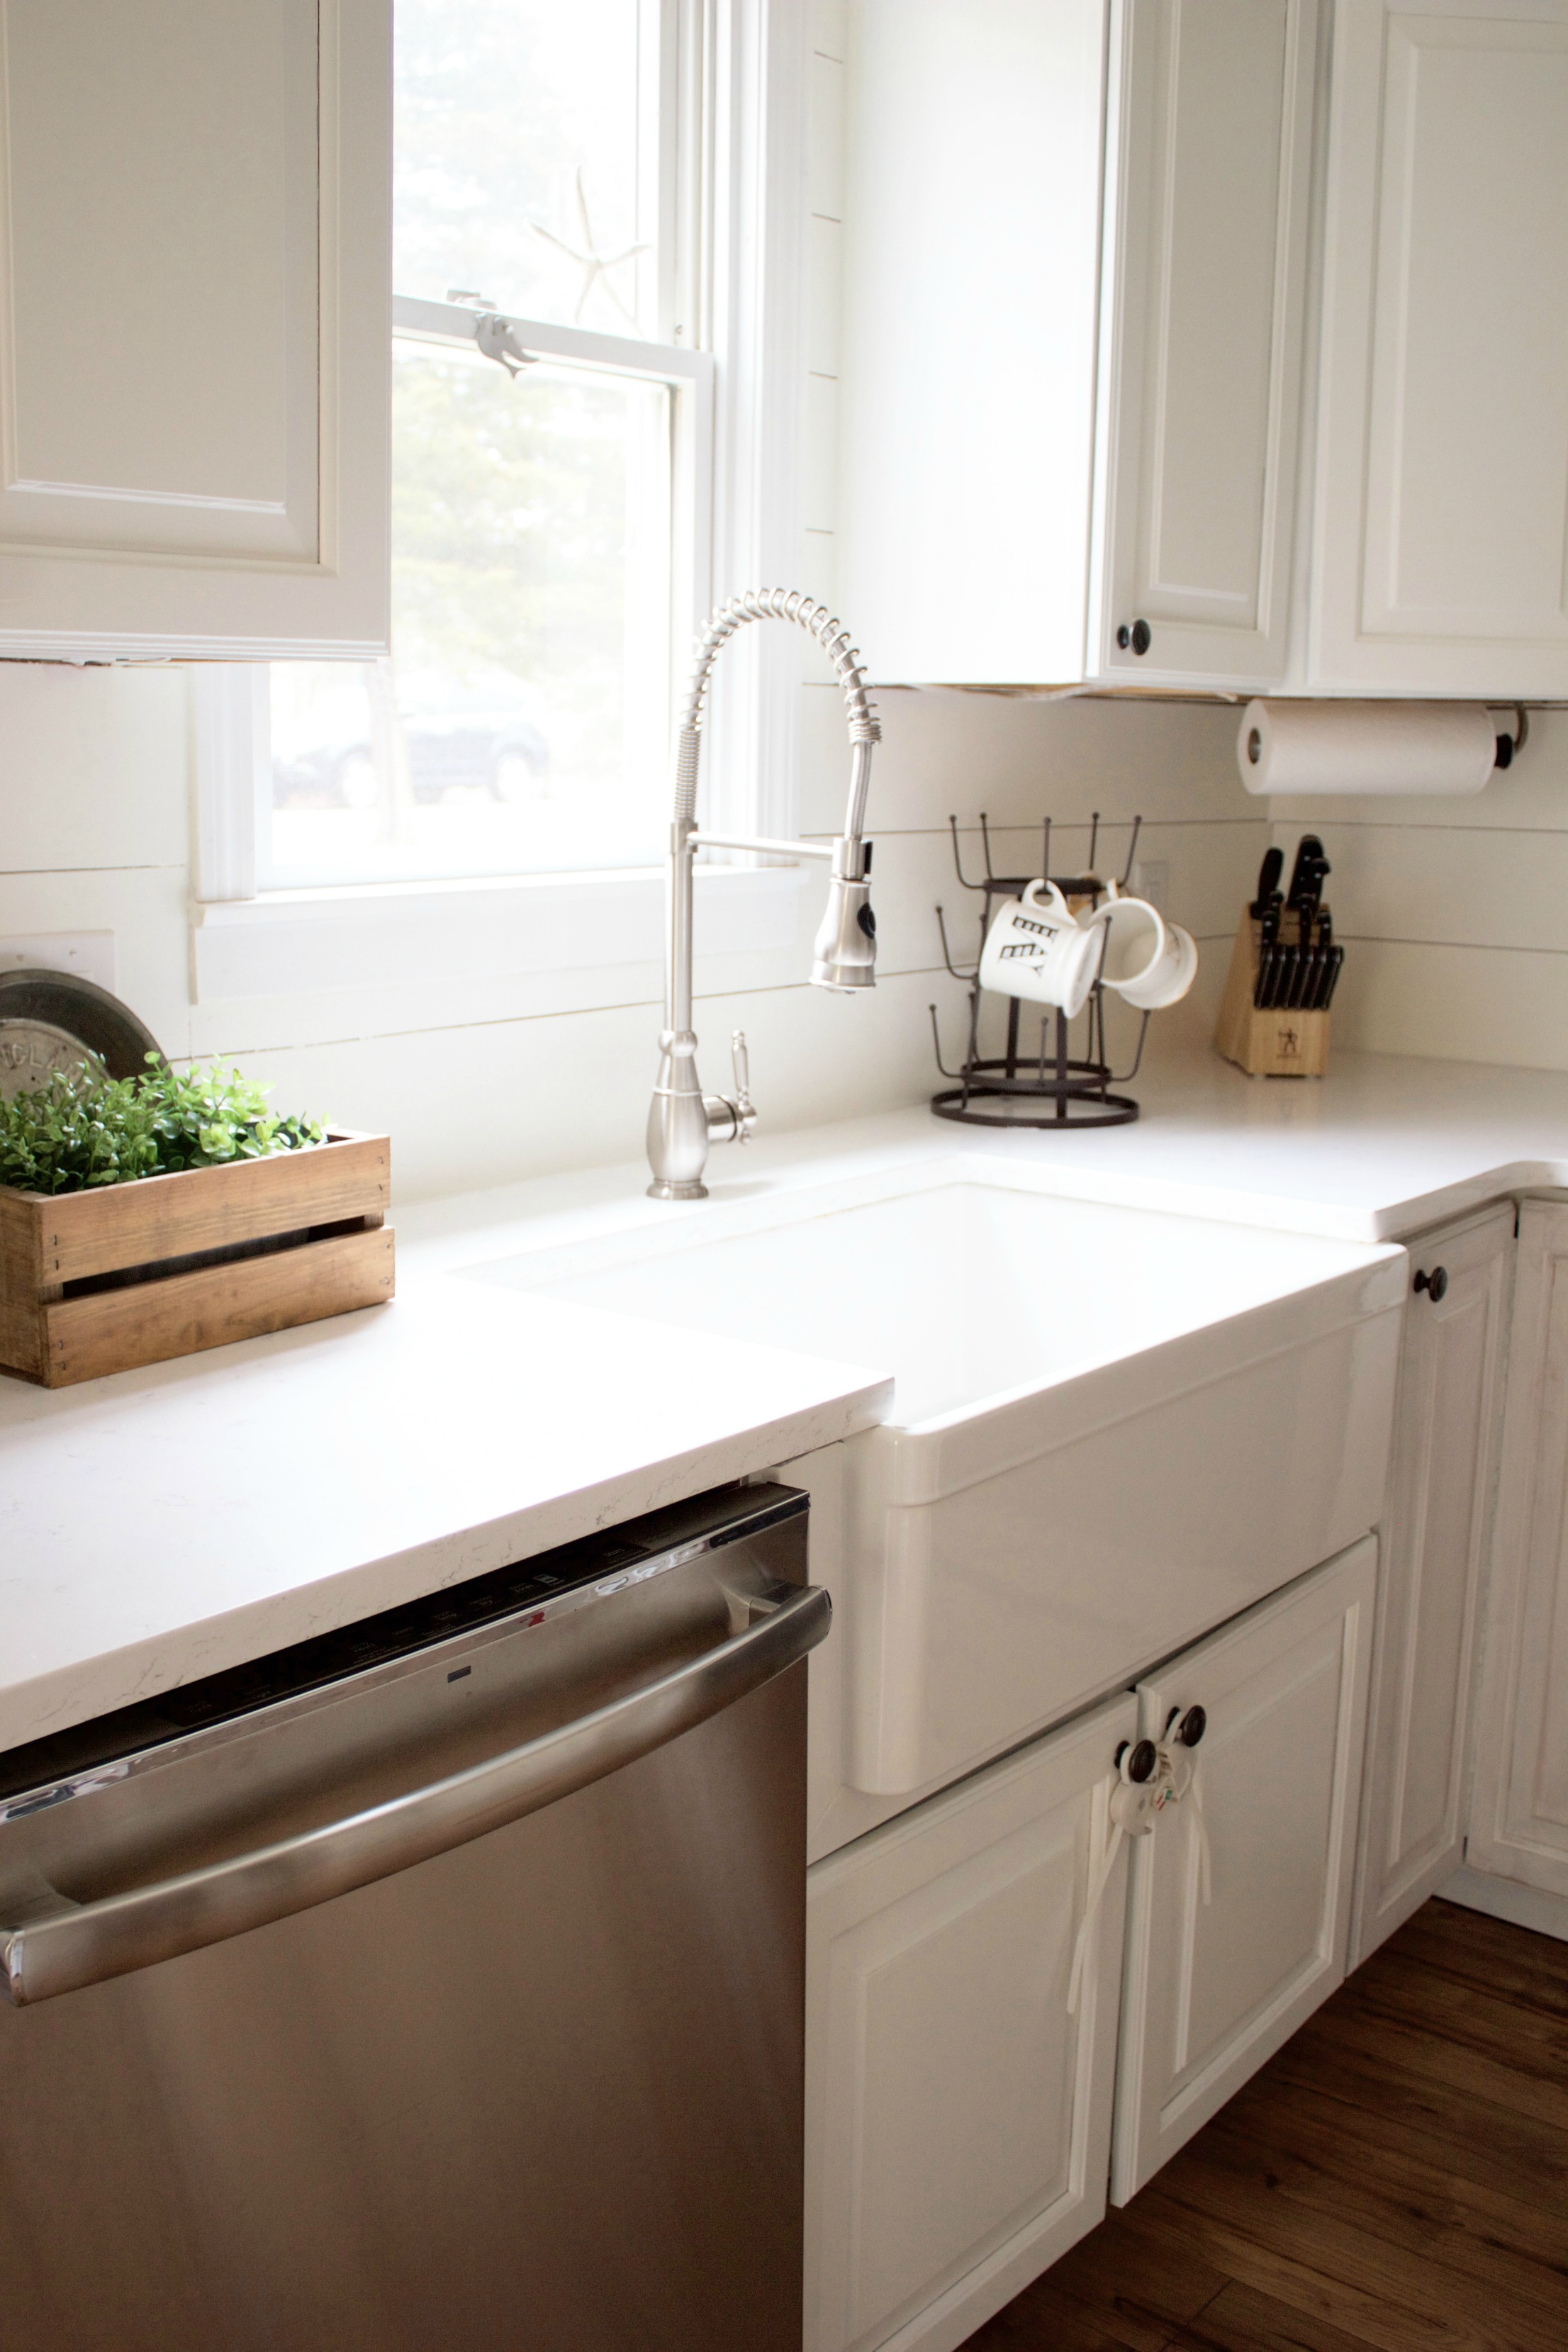 Home // How To Choose A Farmhouse Sink